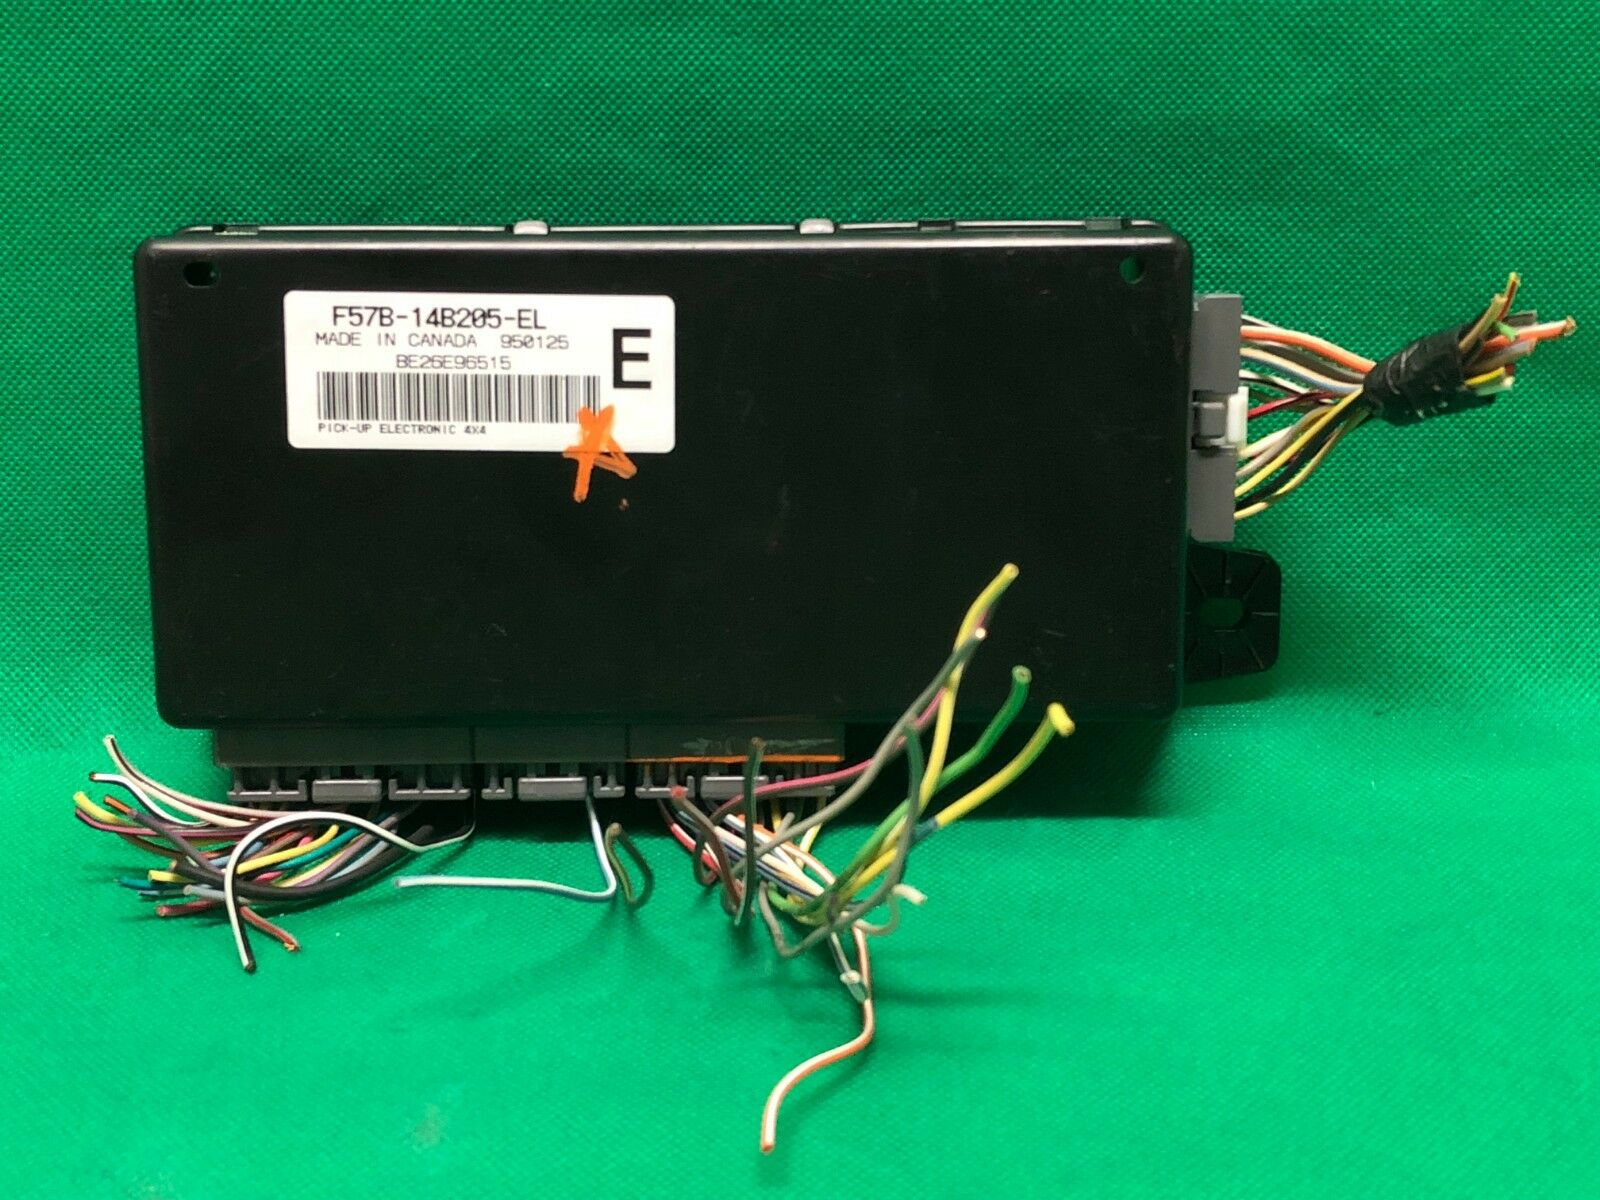 FORD Ranger B3000 4X4 GEM ELECTRONIC MULTIFUNCTION CONTROL Module  F57B-14B205-EL 1 of 12Only 1 available See More